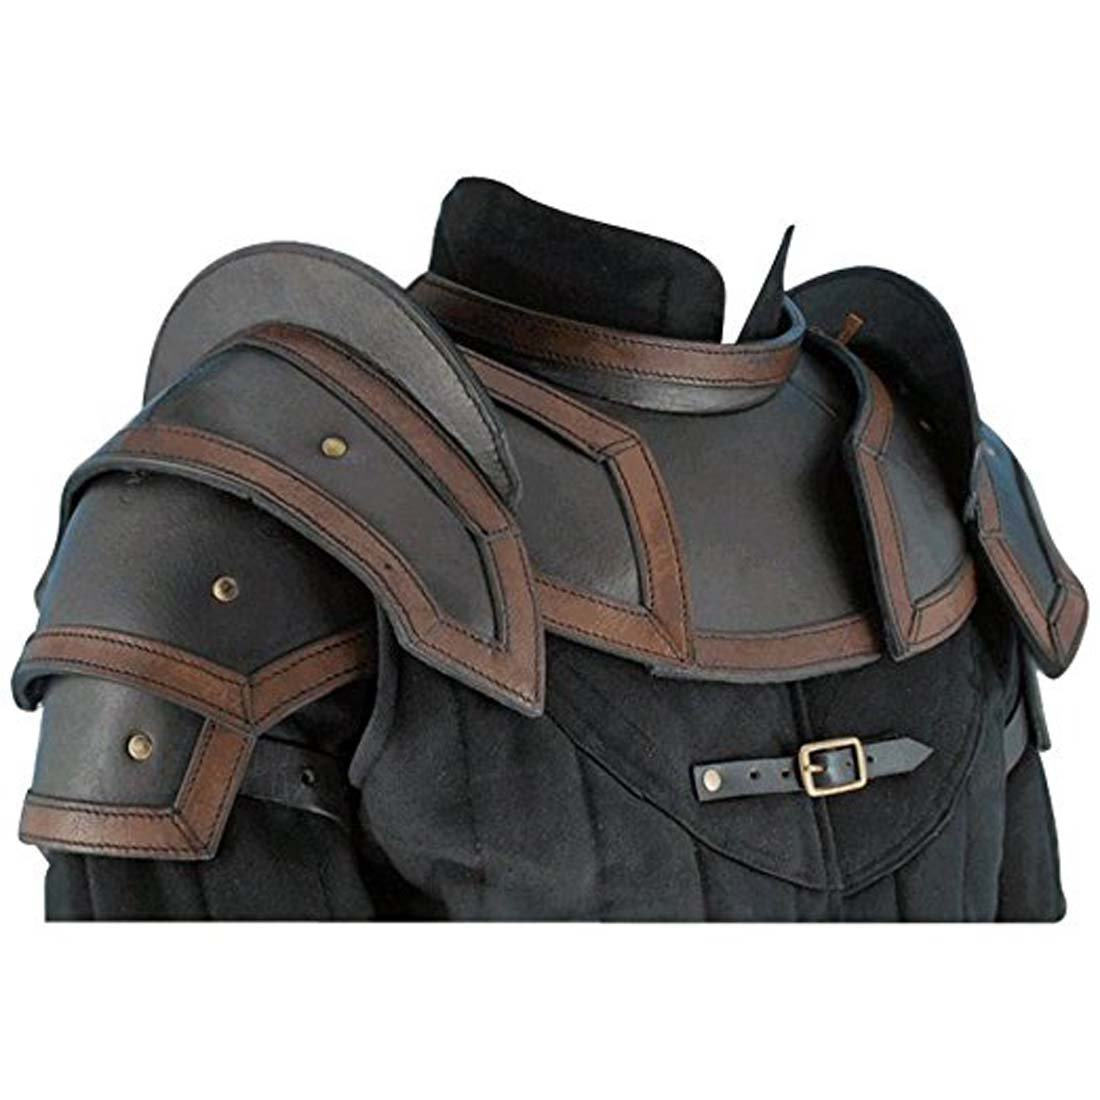 ANTIQUECOLLECTION Leather Shoulder Armour with Neck Guard